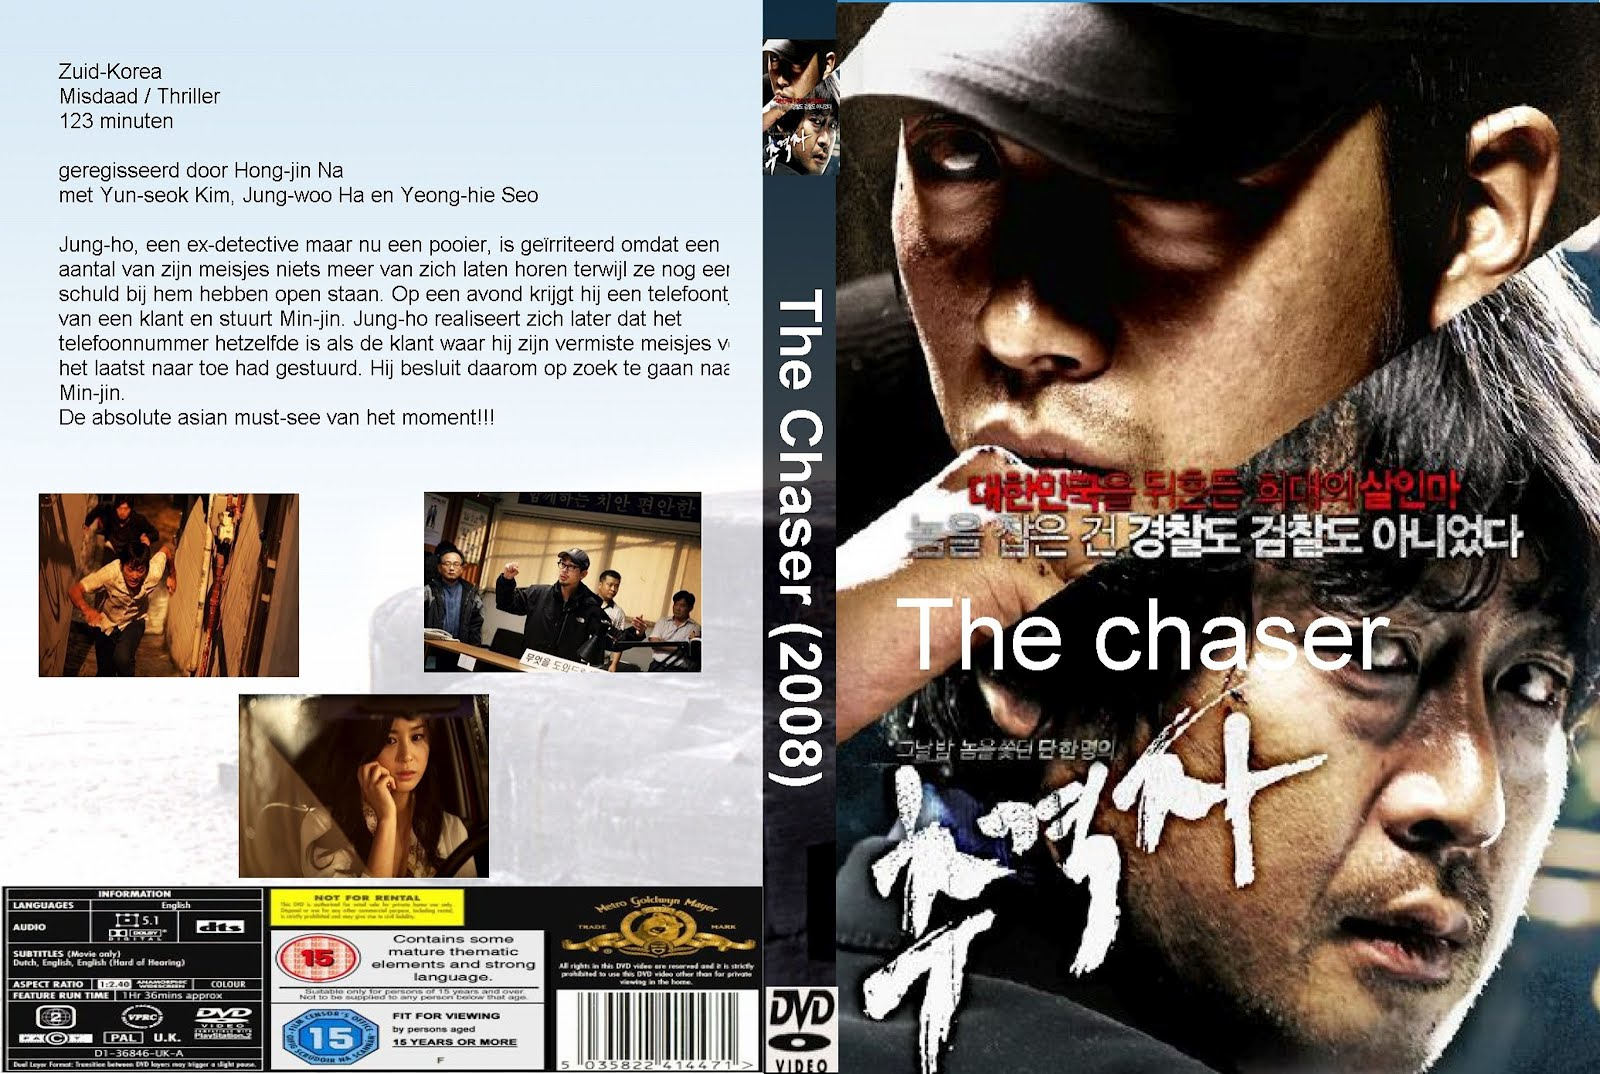 The Chaser Chugyeogja Dvd Cover Art